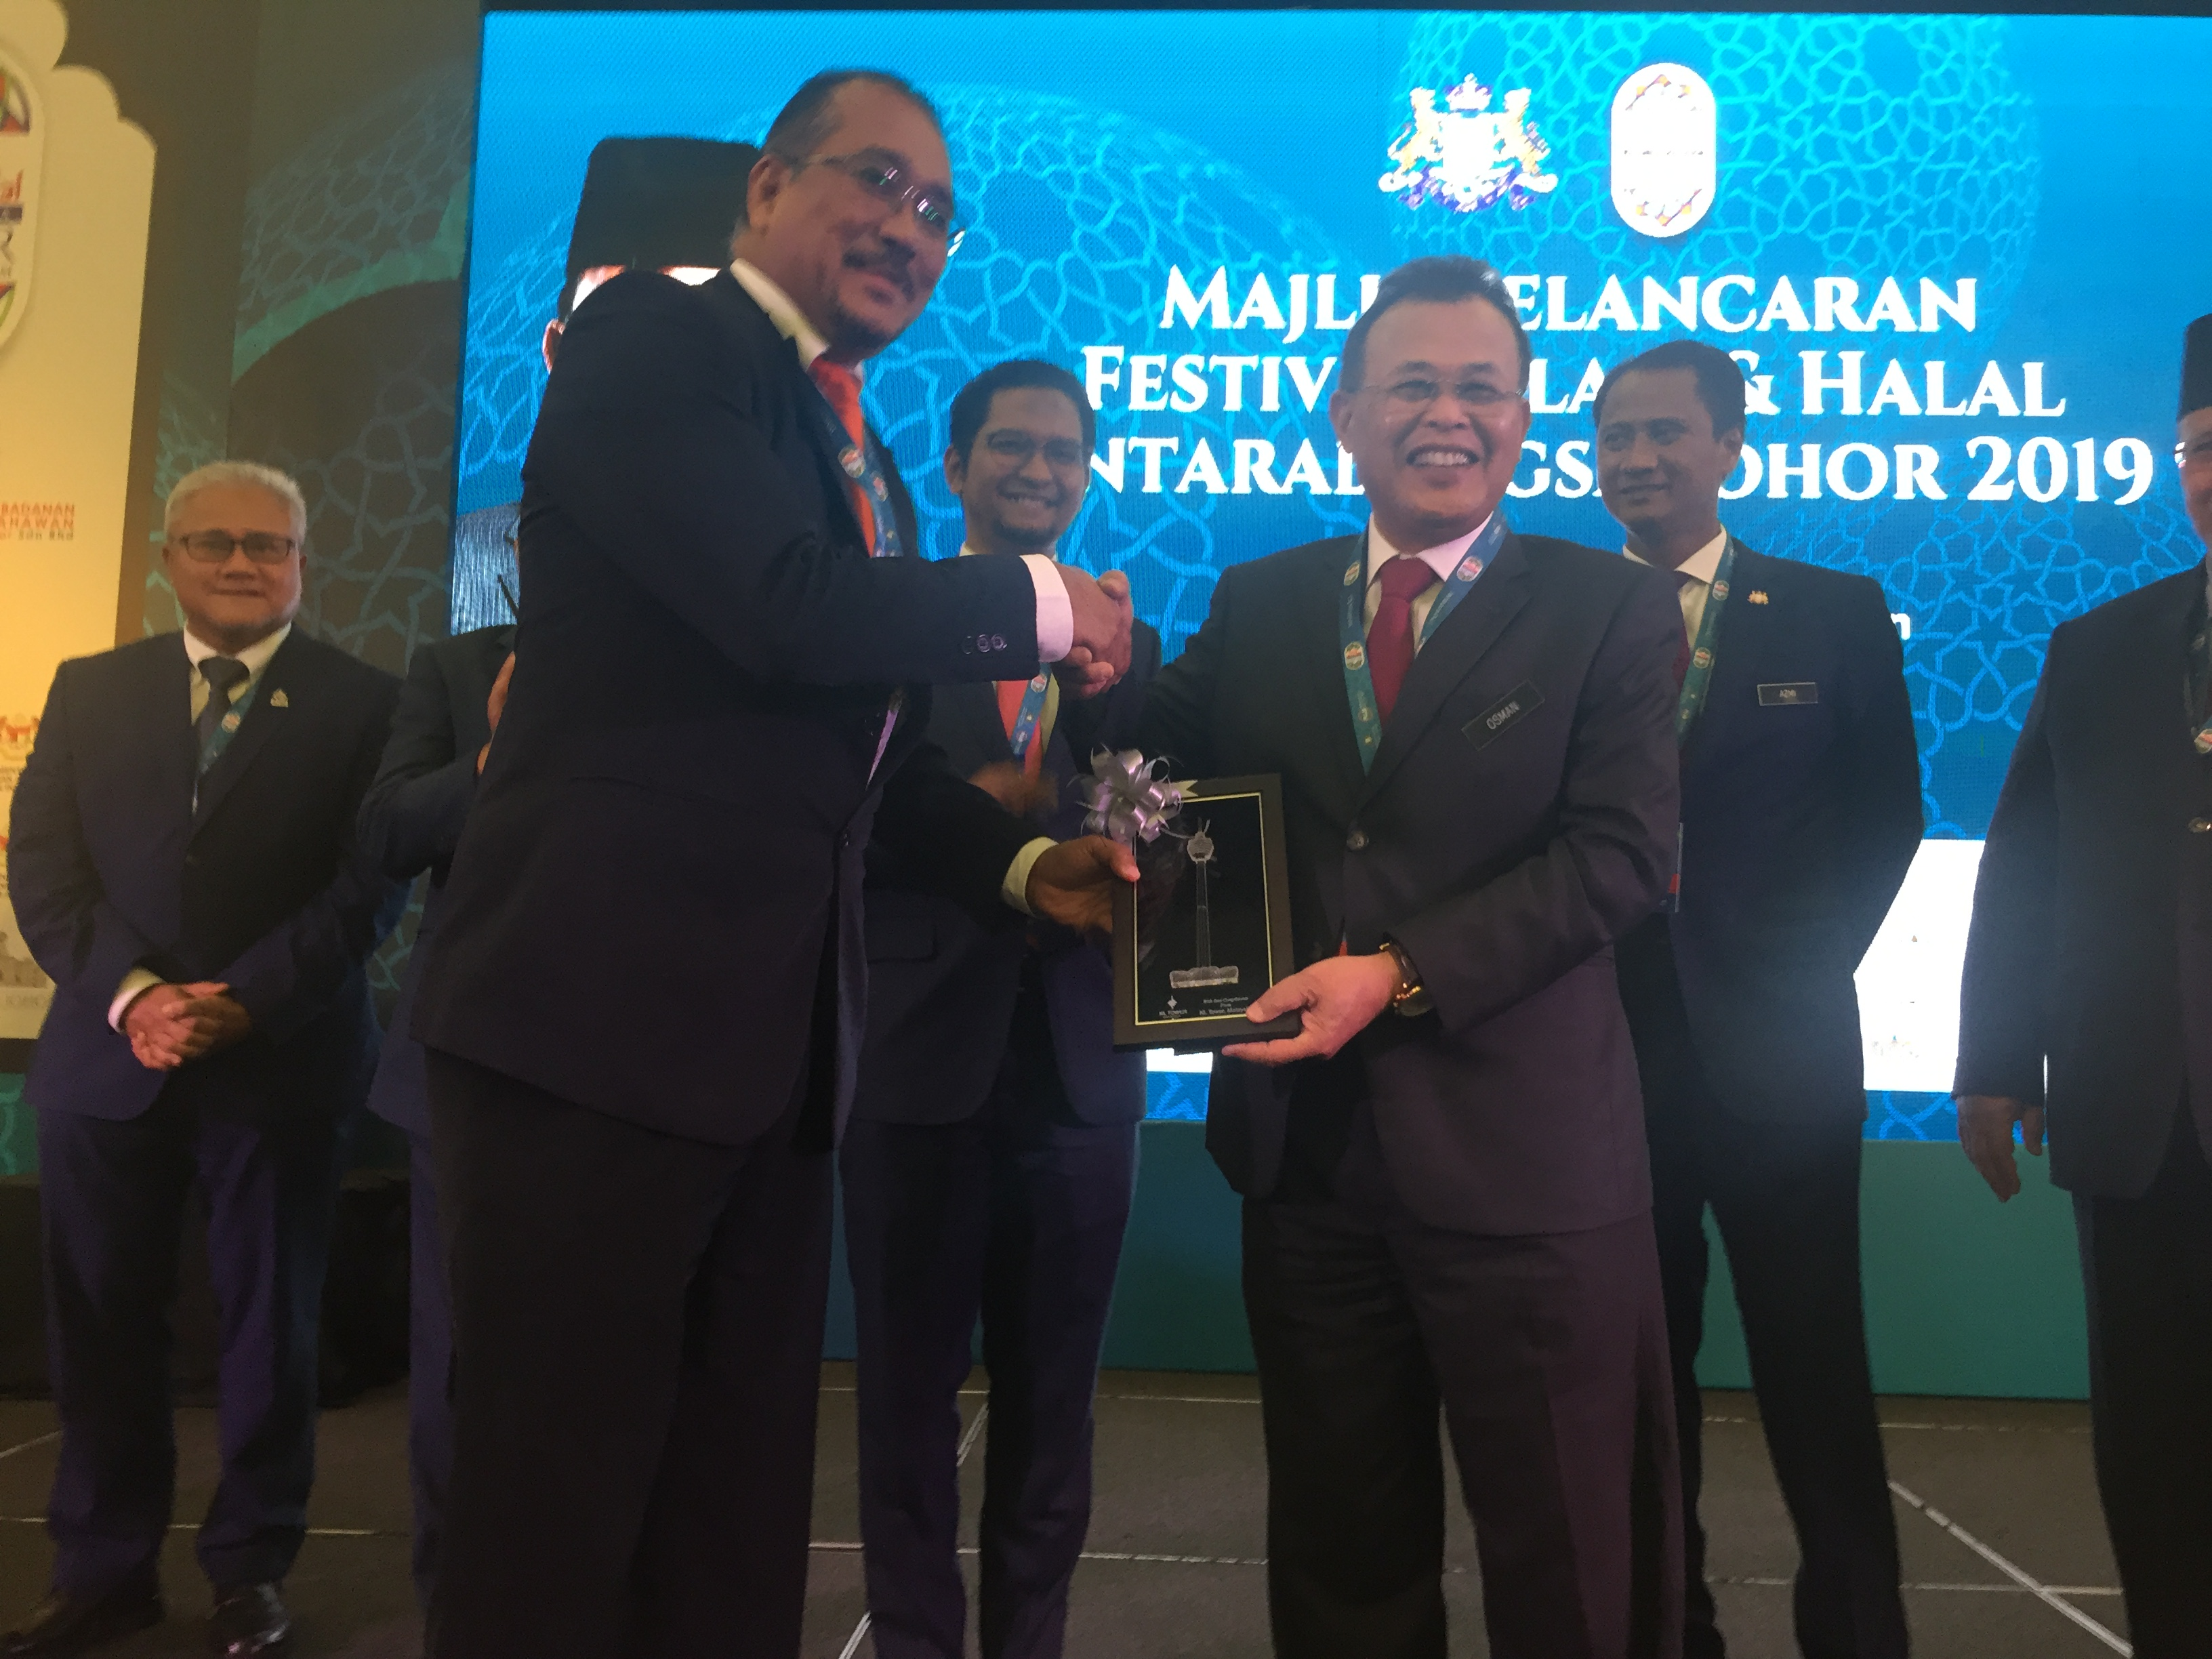 Johor Hosted the First International Islamic and Halal Festival